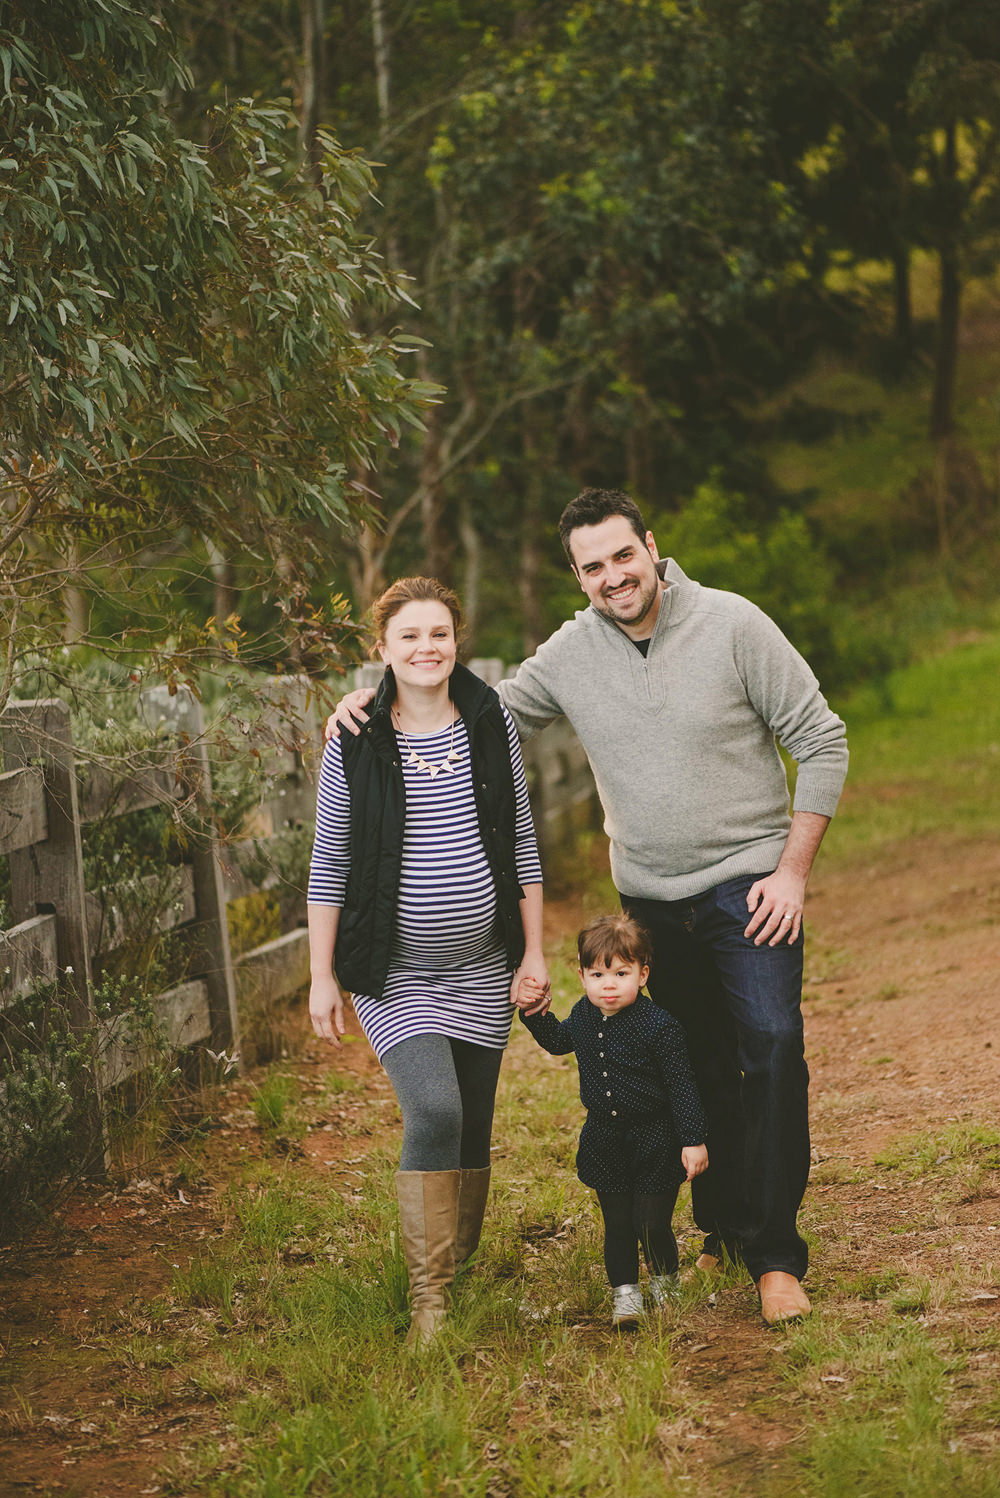 Awesome family photographer in sydney fun candid natural